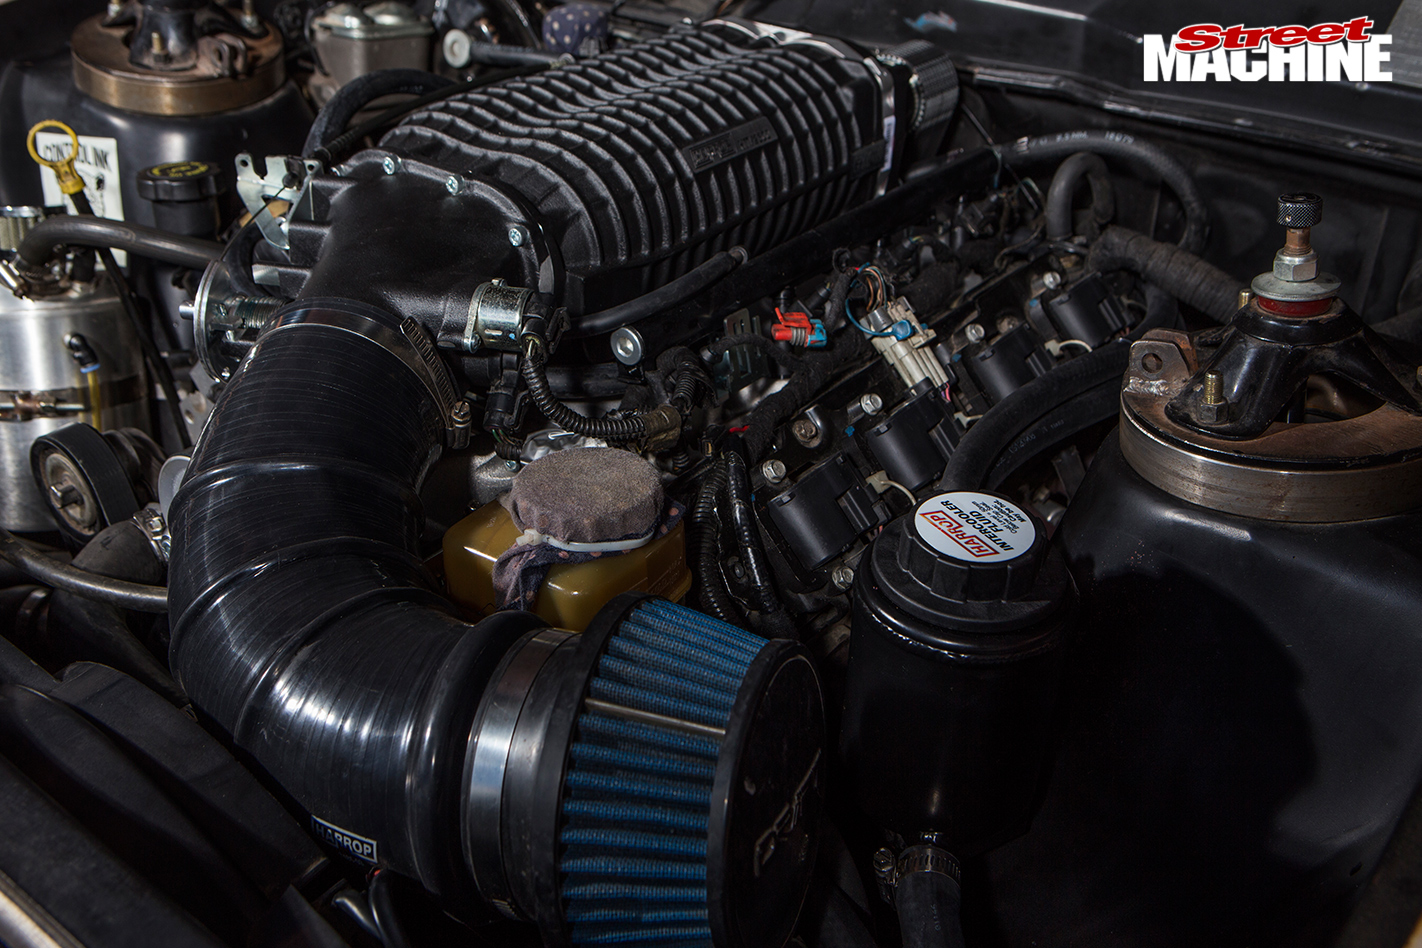 Ford -falcon -xy -drifter -engine -blower